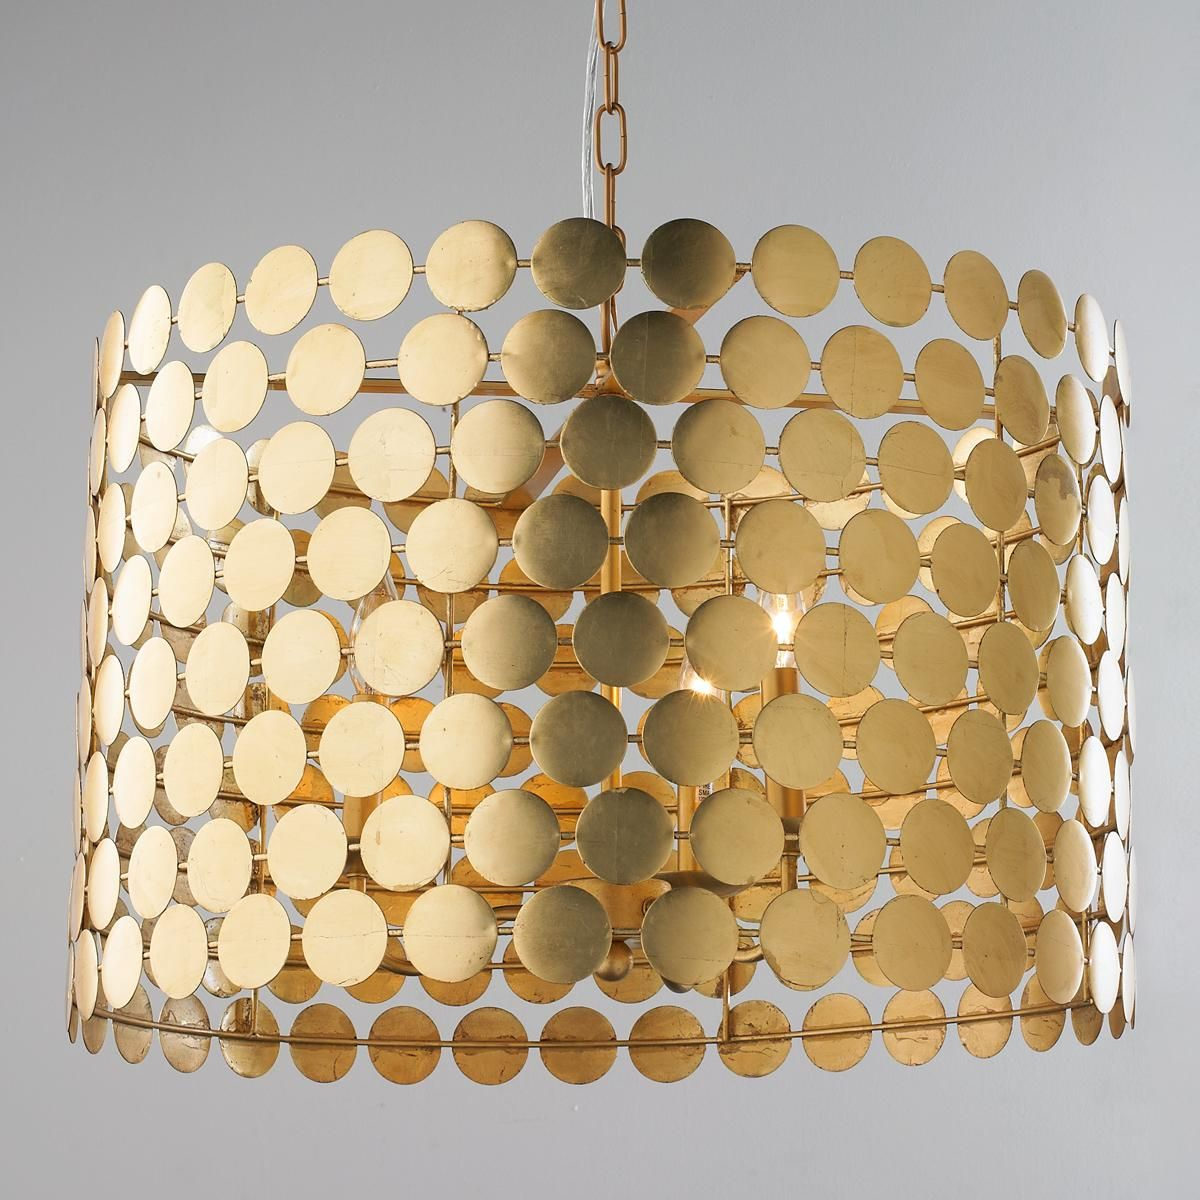 Drum Shade Chandelier With Diffuser The Keylor Family Diy